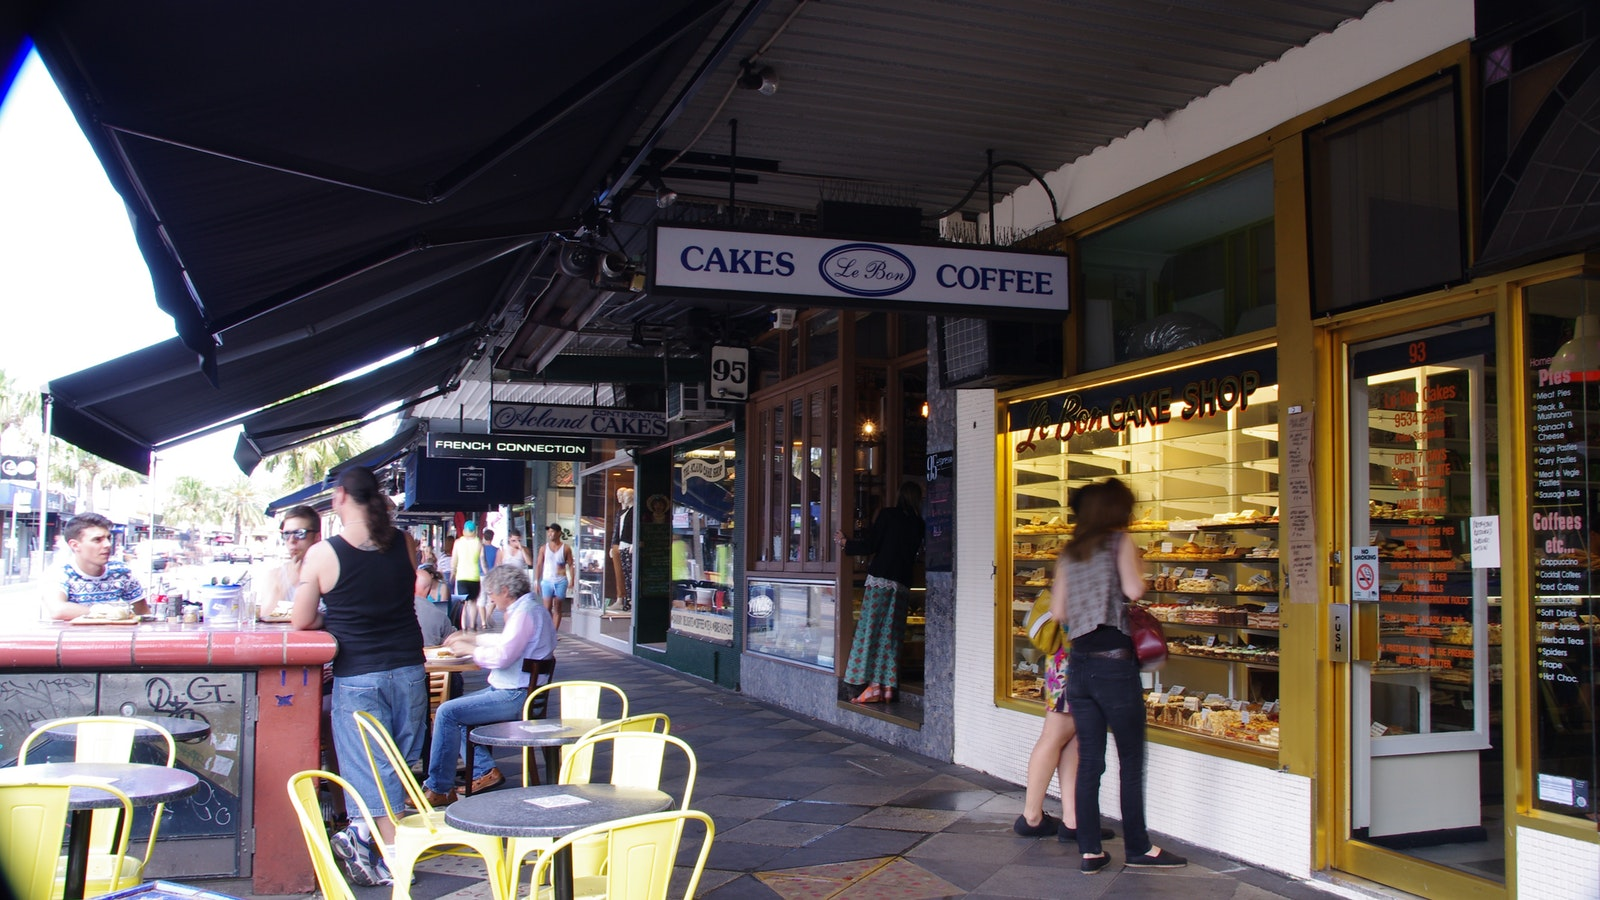 Shopping for European Cakes in Acland Street, St Kilda